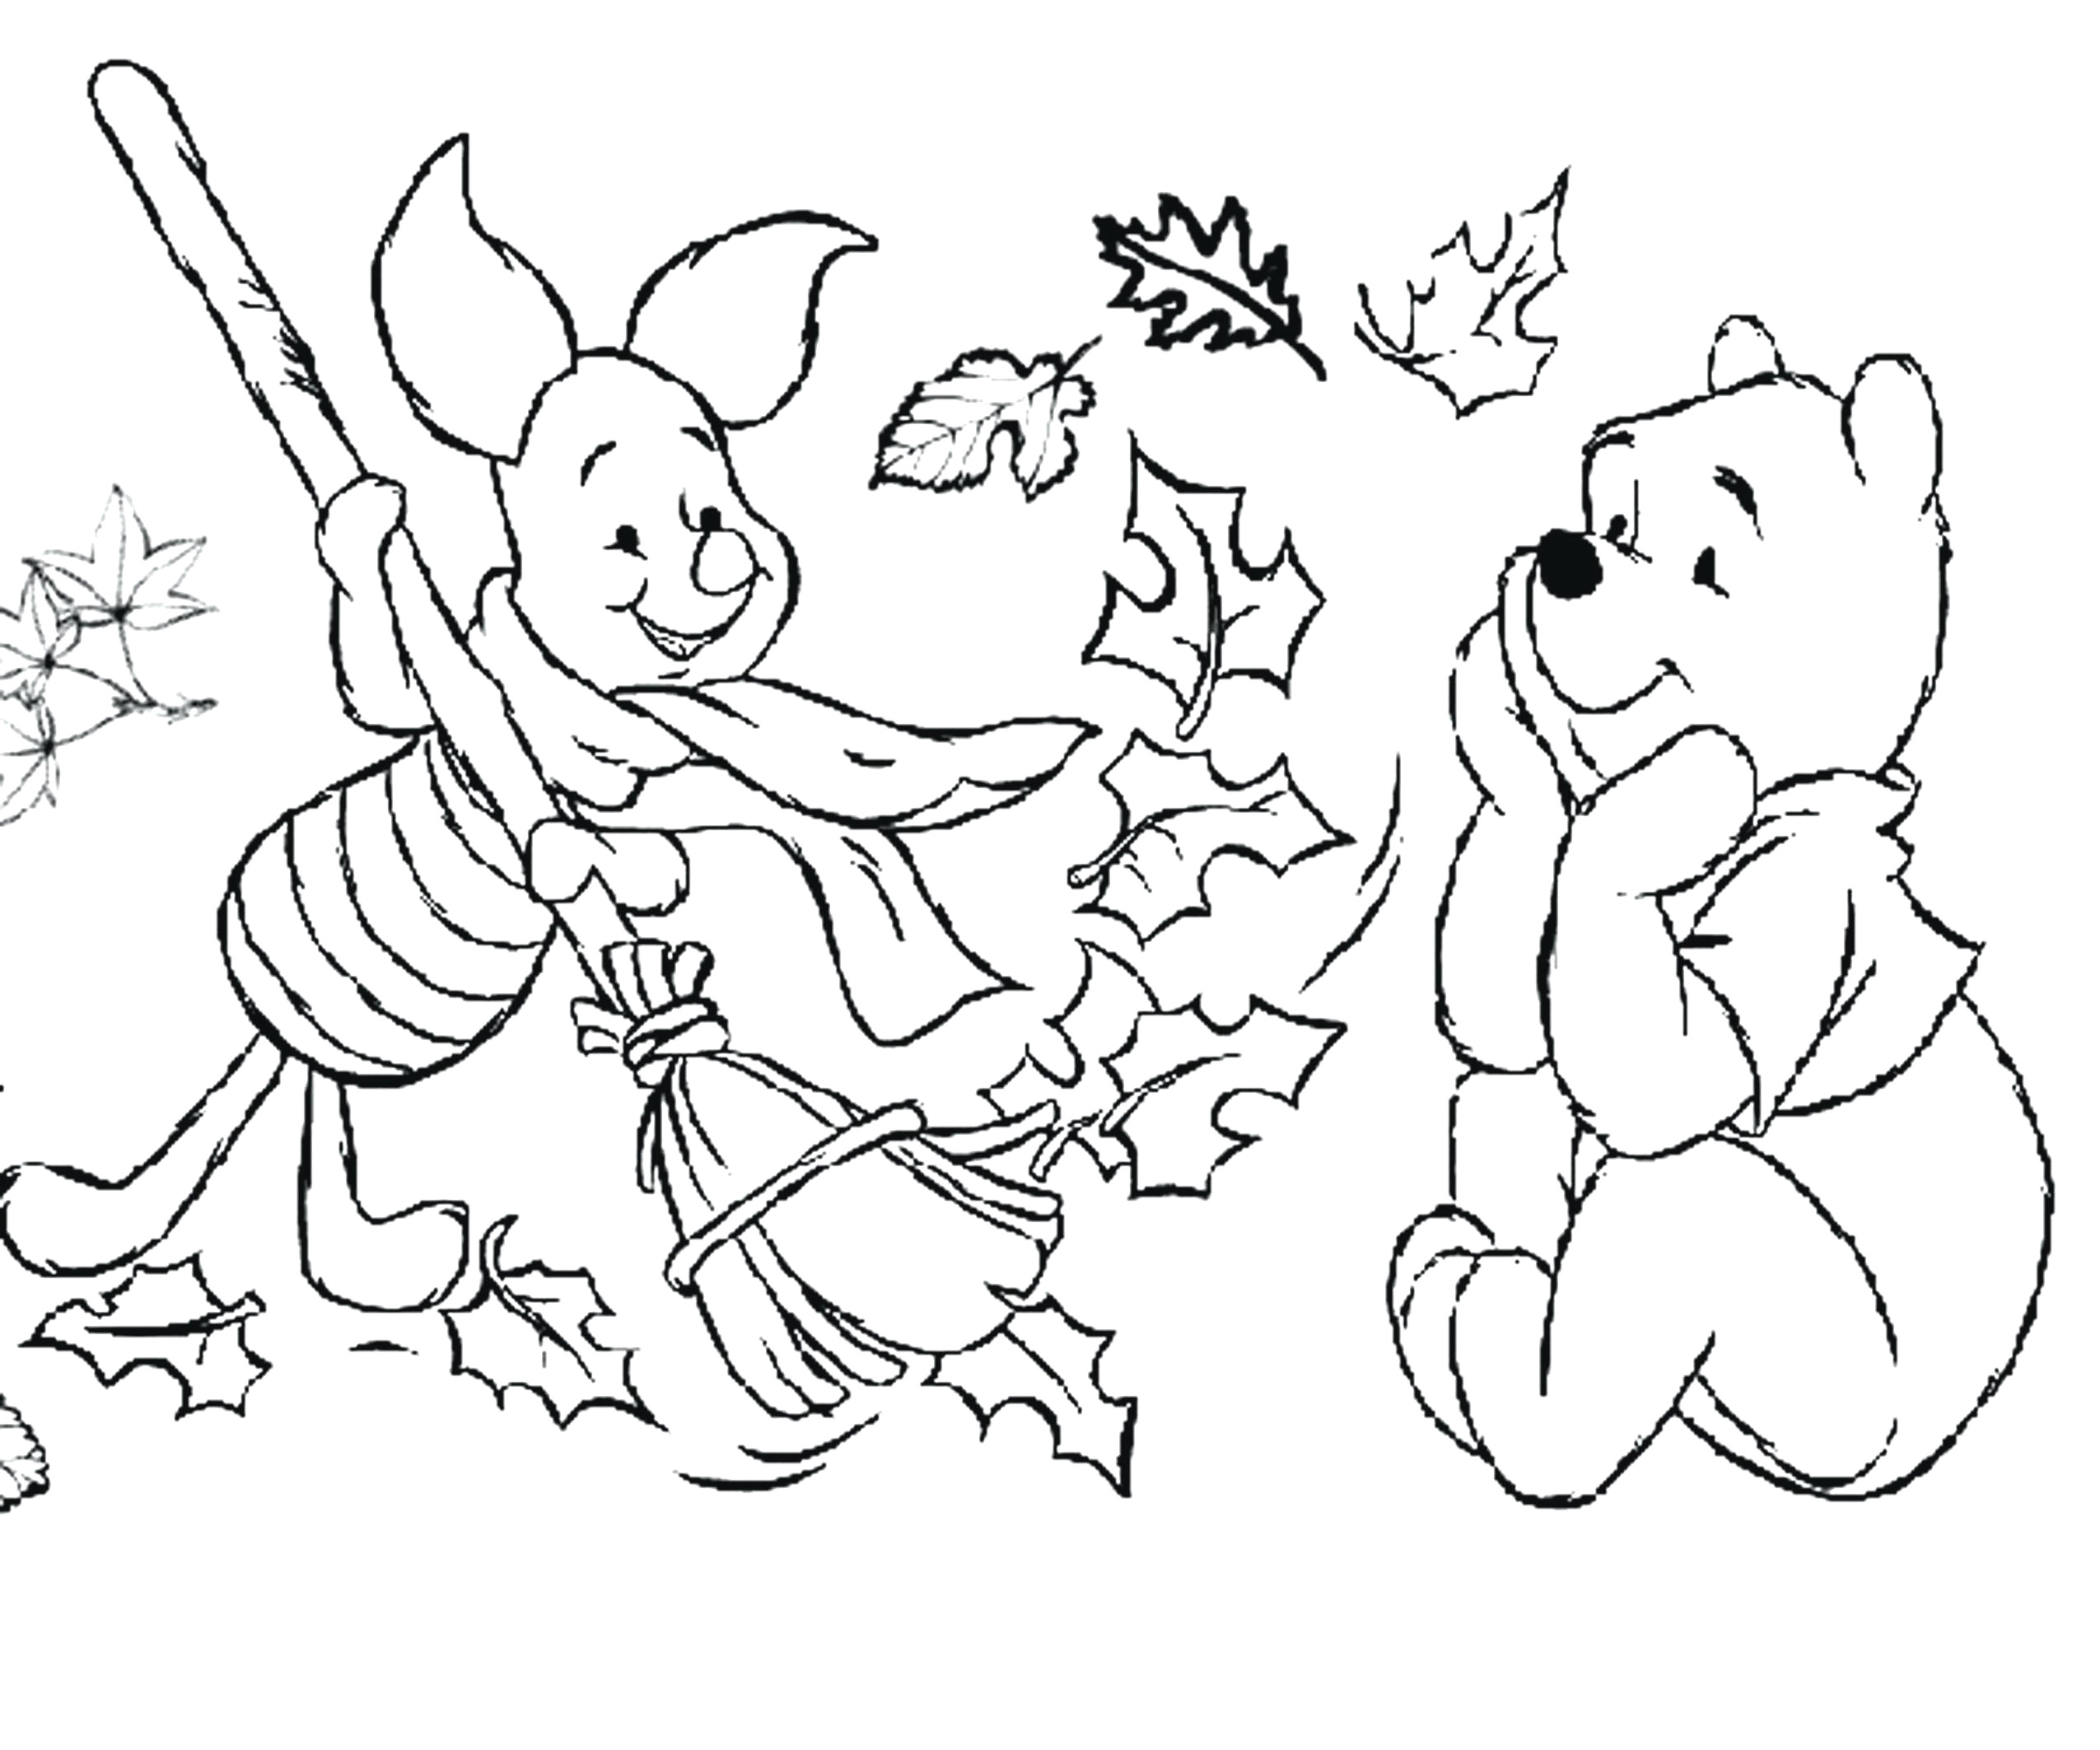 25 Bird Coloring Pages For Kids Gallery Coloring Sheets